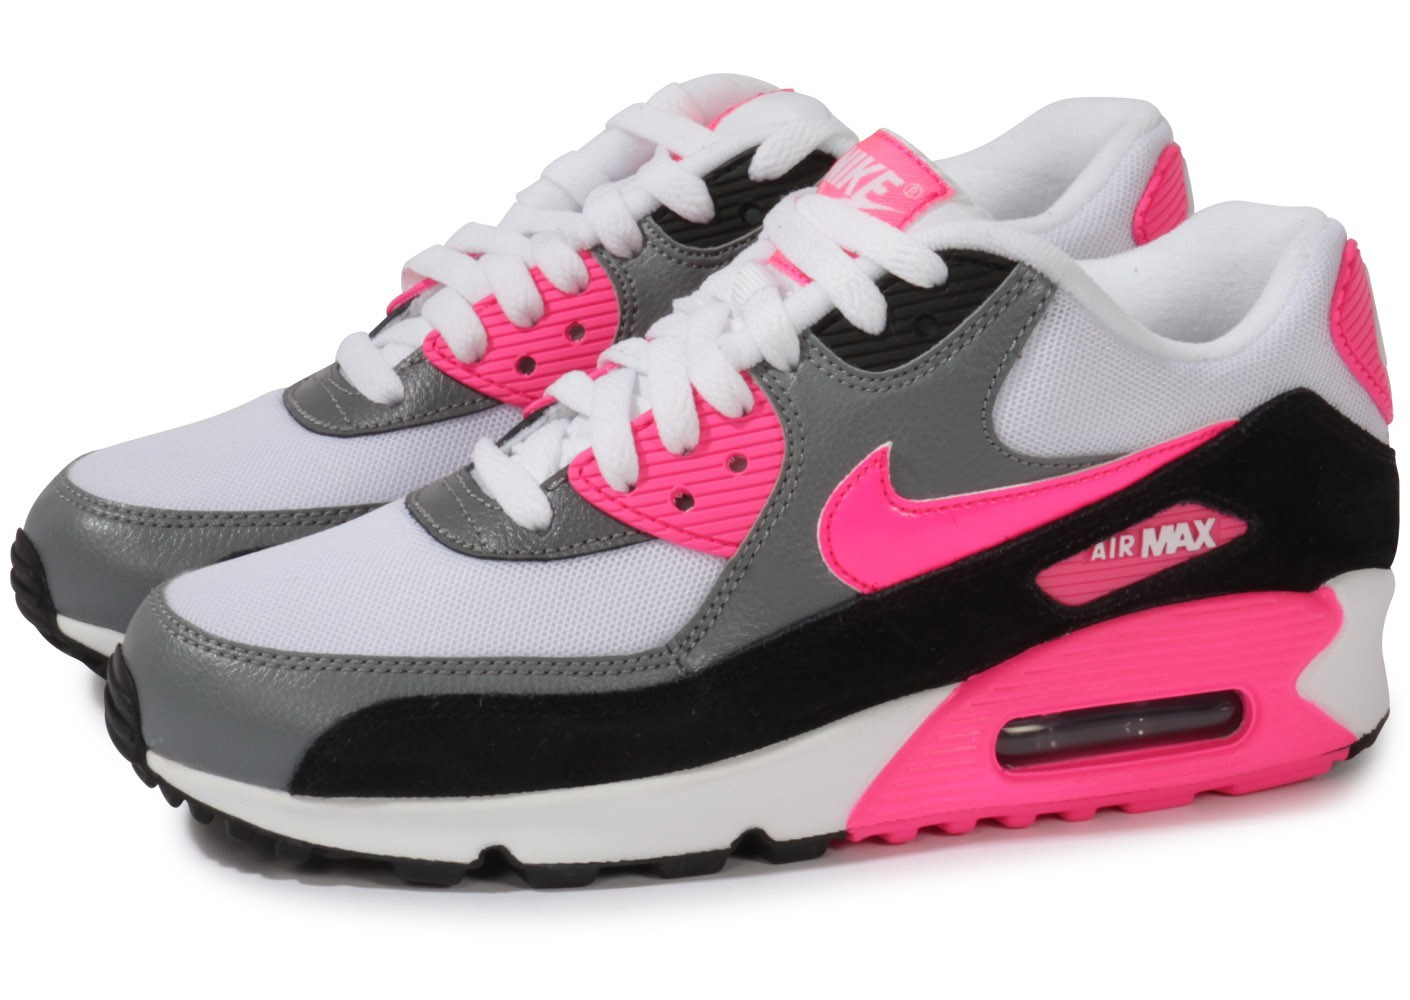 en soldes 28f9a f795b chaussures nike air pour femme,achat / vente chaussures ...